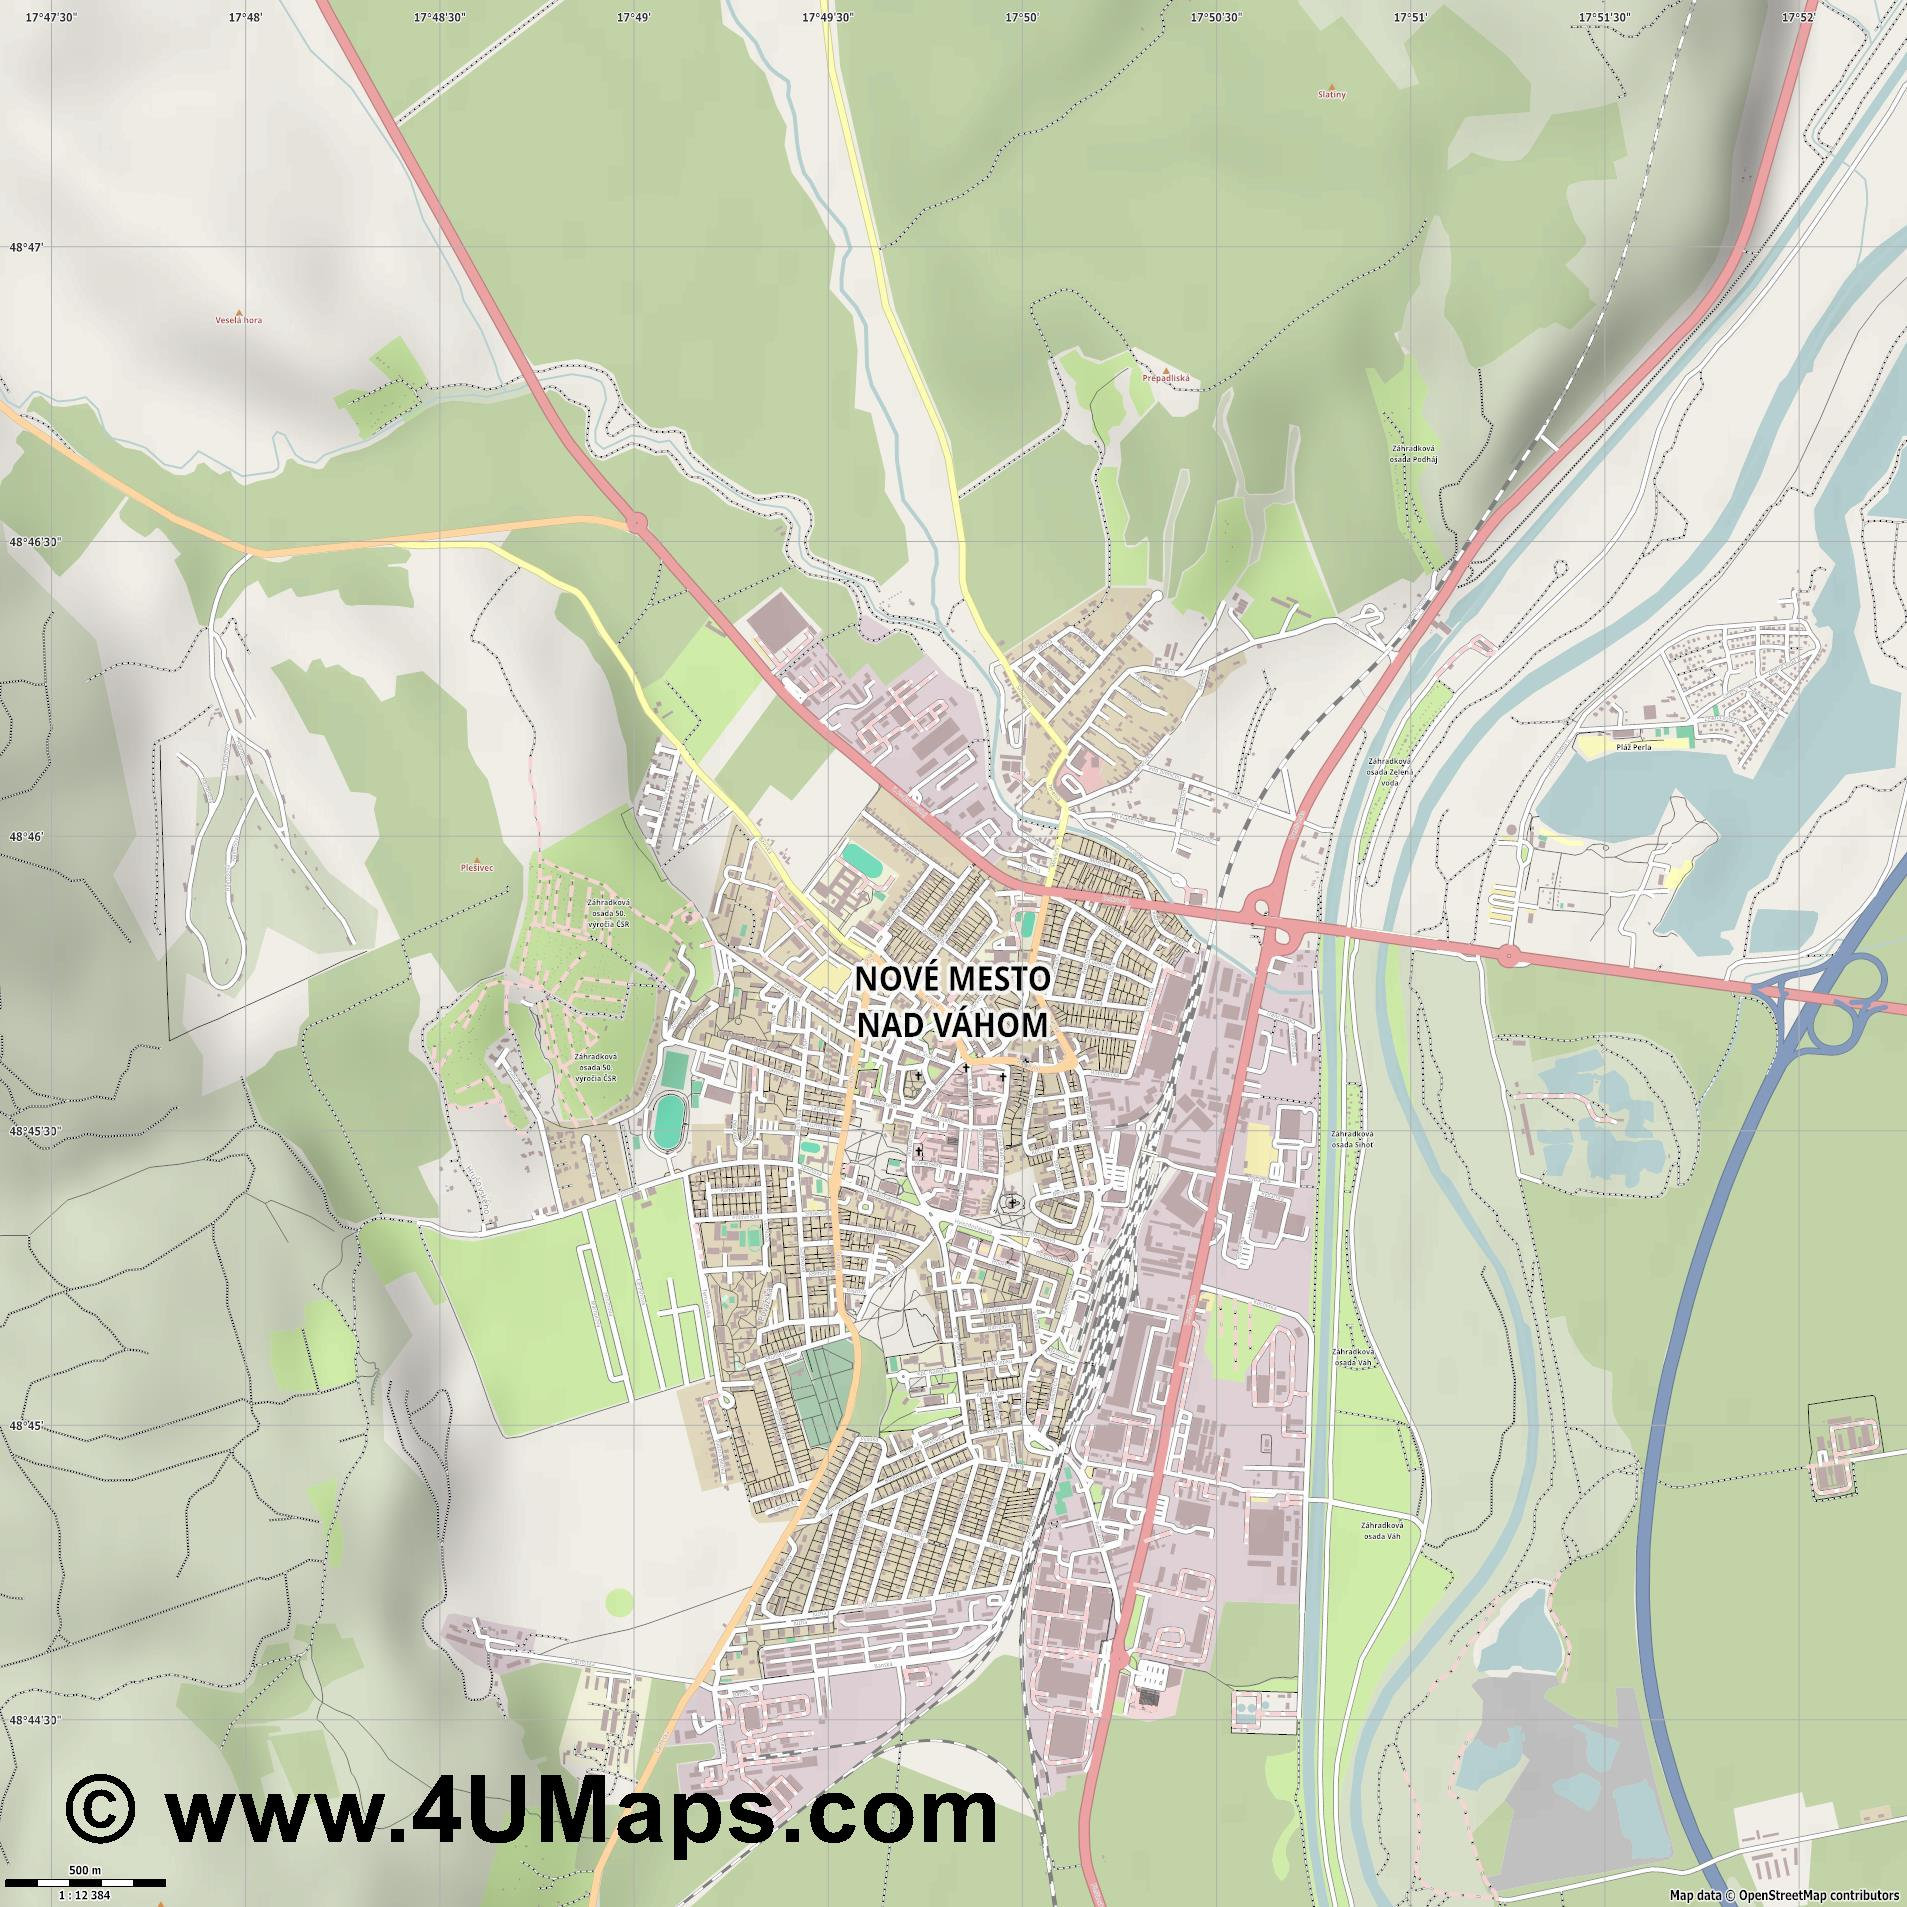 Nové Mesto nad Váhom Neustadt an der Waag  jpg ultra high detail preview vector city map